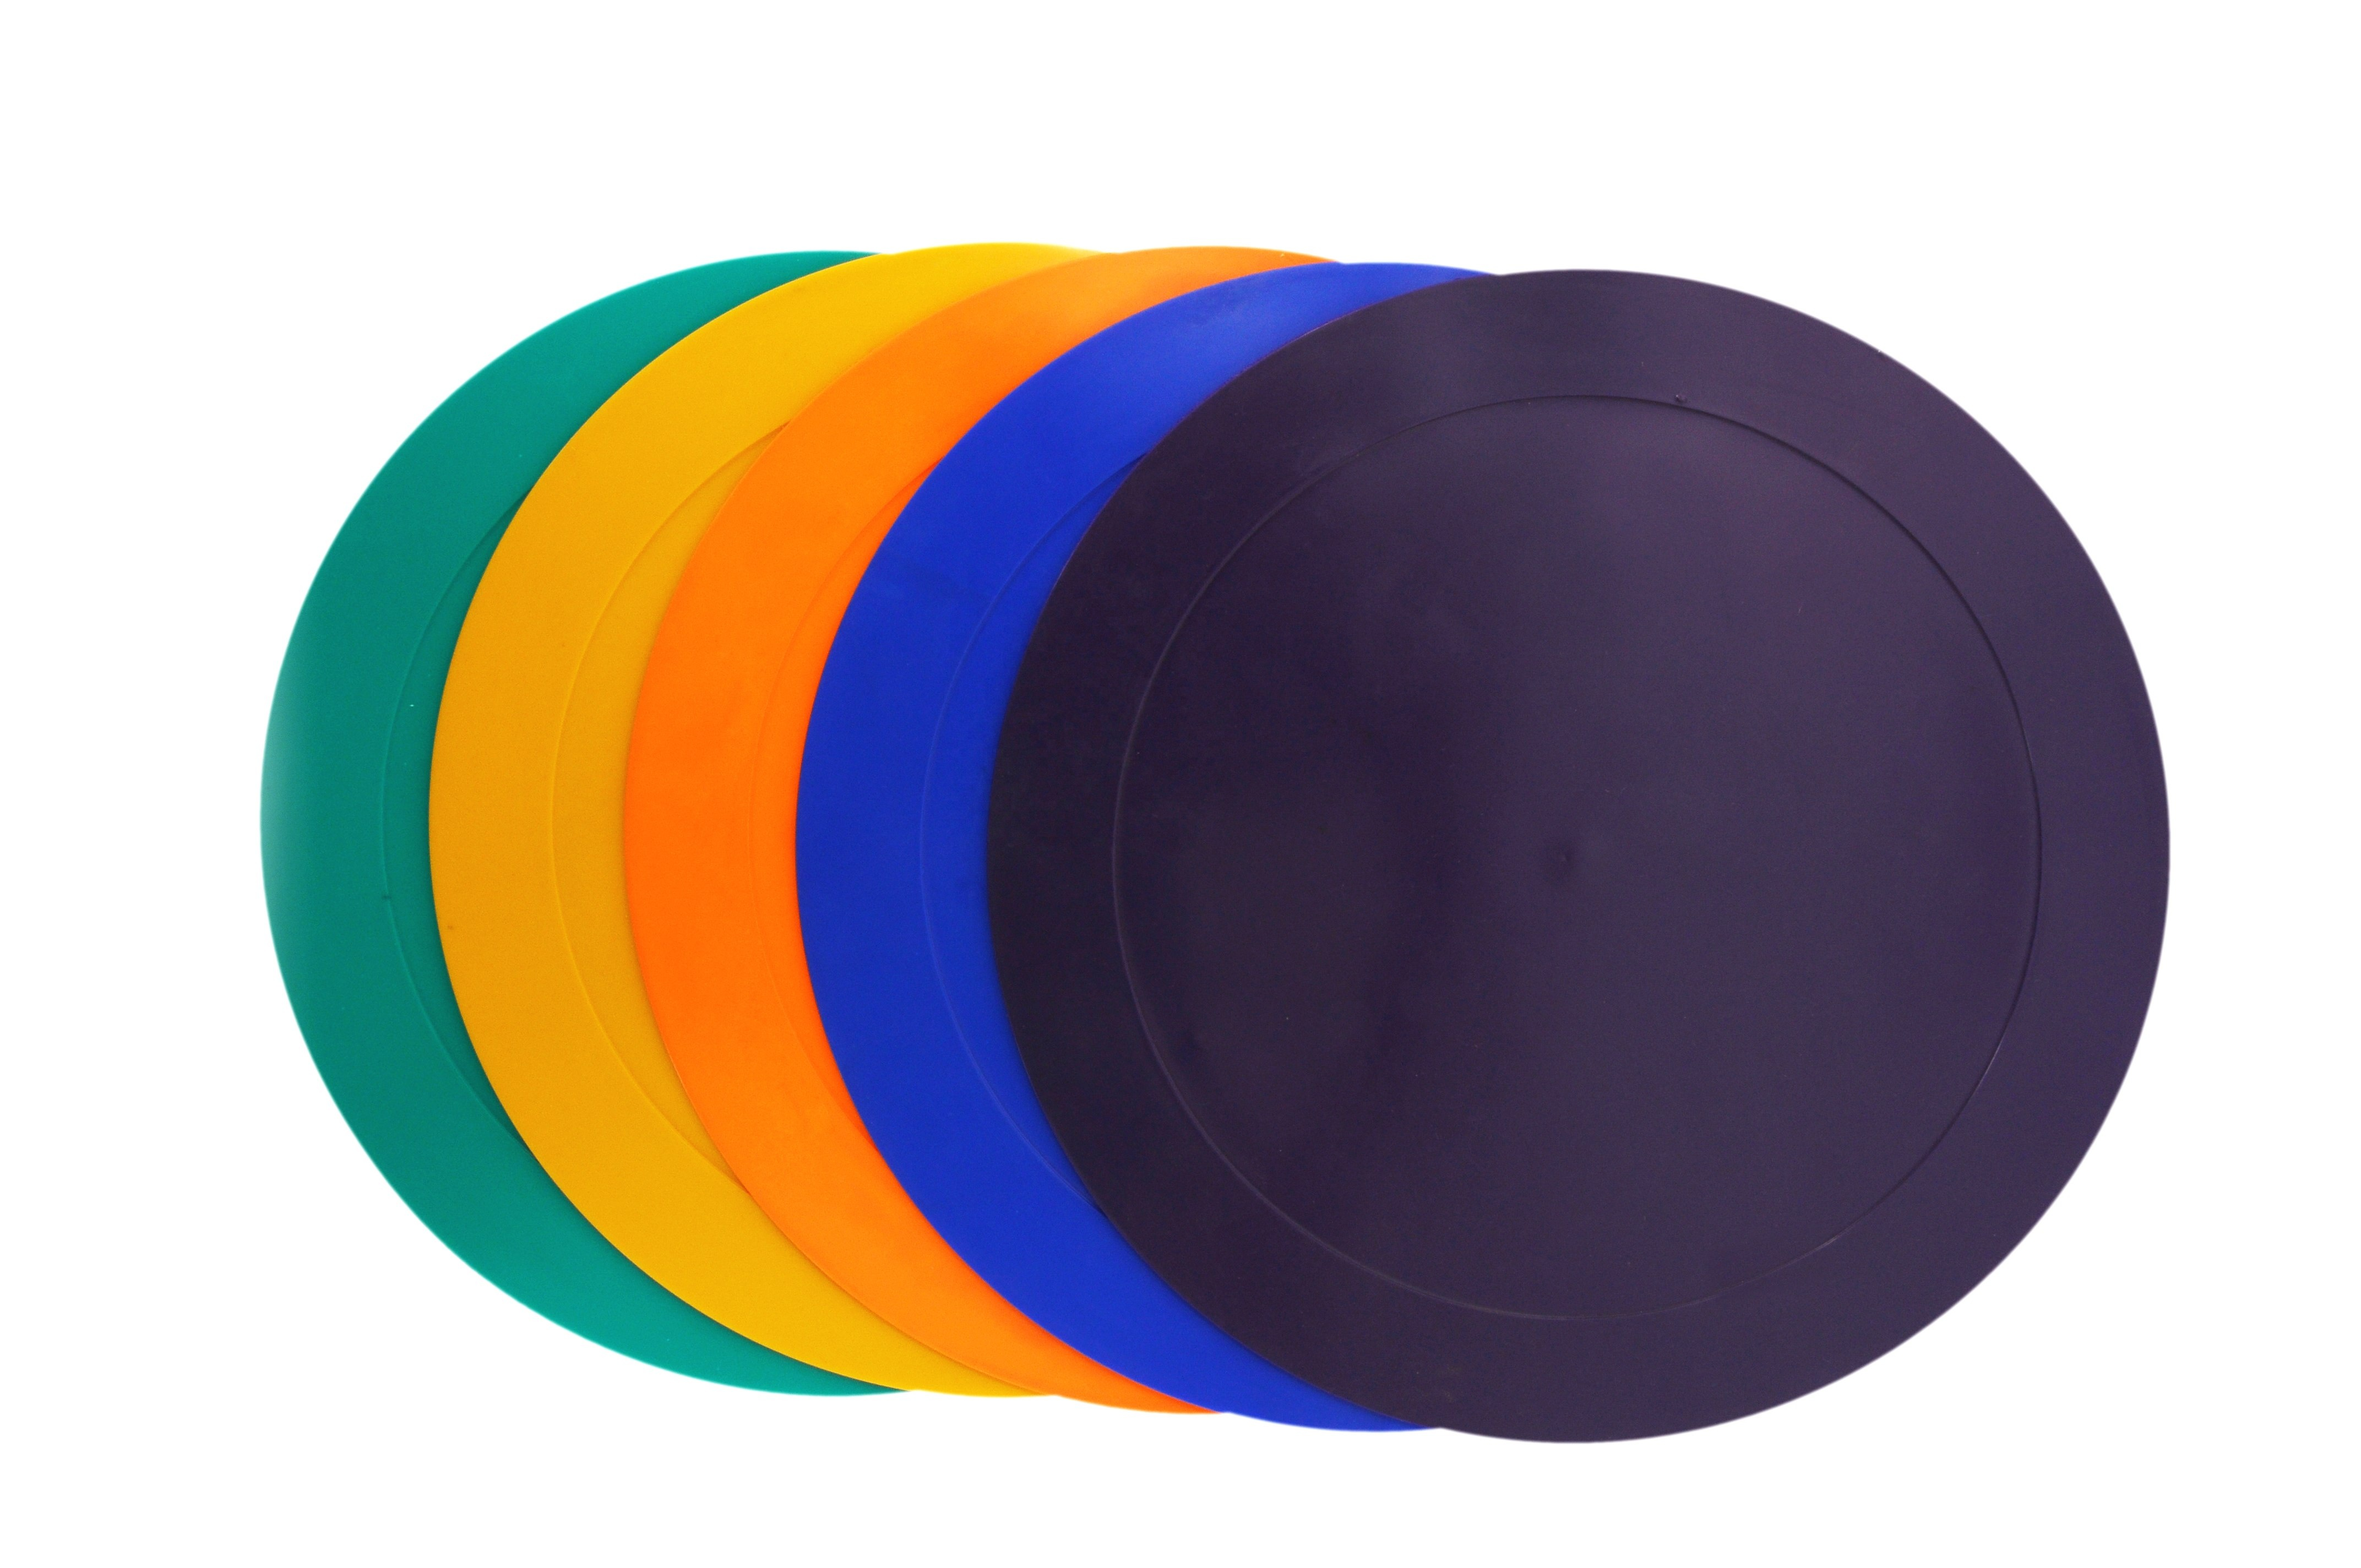 Anti Slip Colorful Rubber Floor Poly Carpet Spot Markers for Training & Kids Activities also called Disc Flat Cone Markers